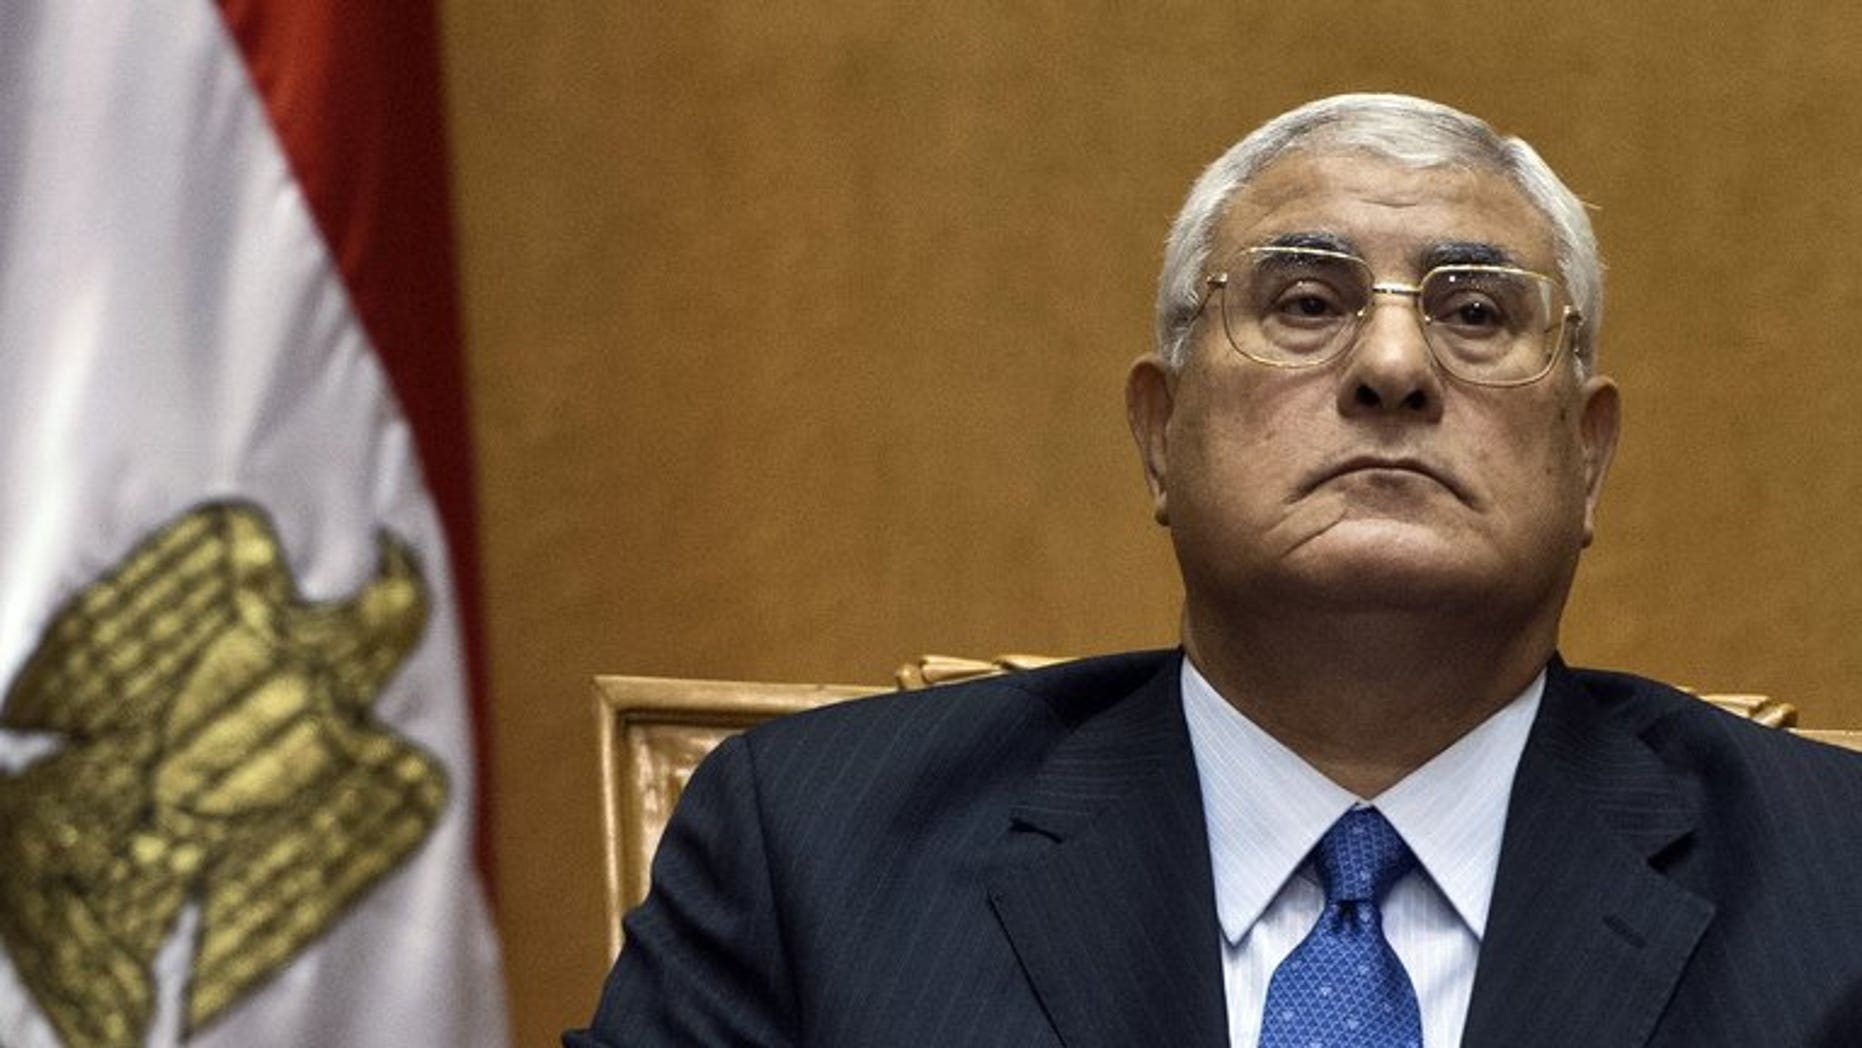 Egypt's chief justice Adly Mansour is sworn in as interim president in Cairo on July 4, 2013, a day after the military ousted and detained president Mohamed Morsi following days of massive protests. Mansour's interim charter hit a wave of opposition shortly after it was announced late on Monday, illustrating the treacherous political landscape following Morsi's ouster.